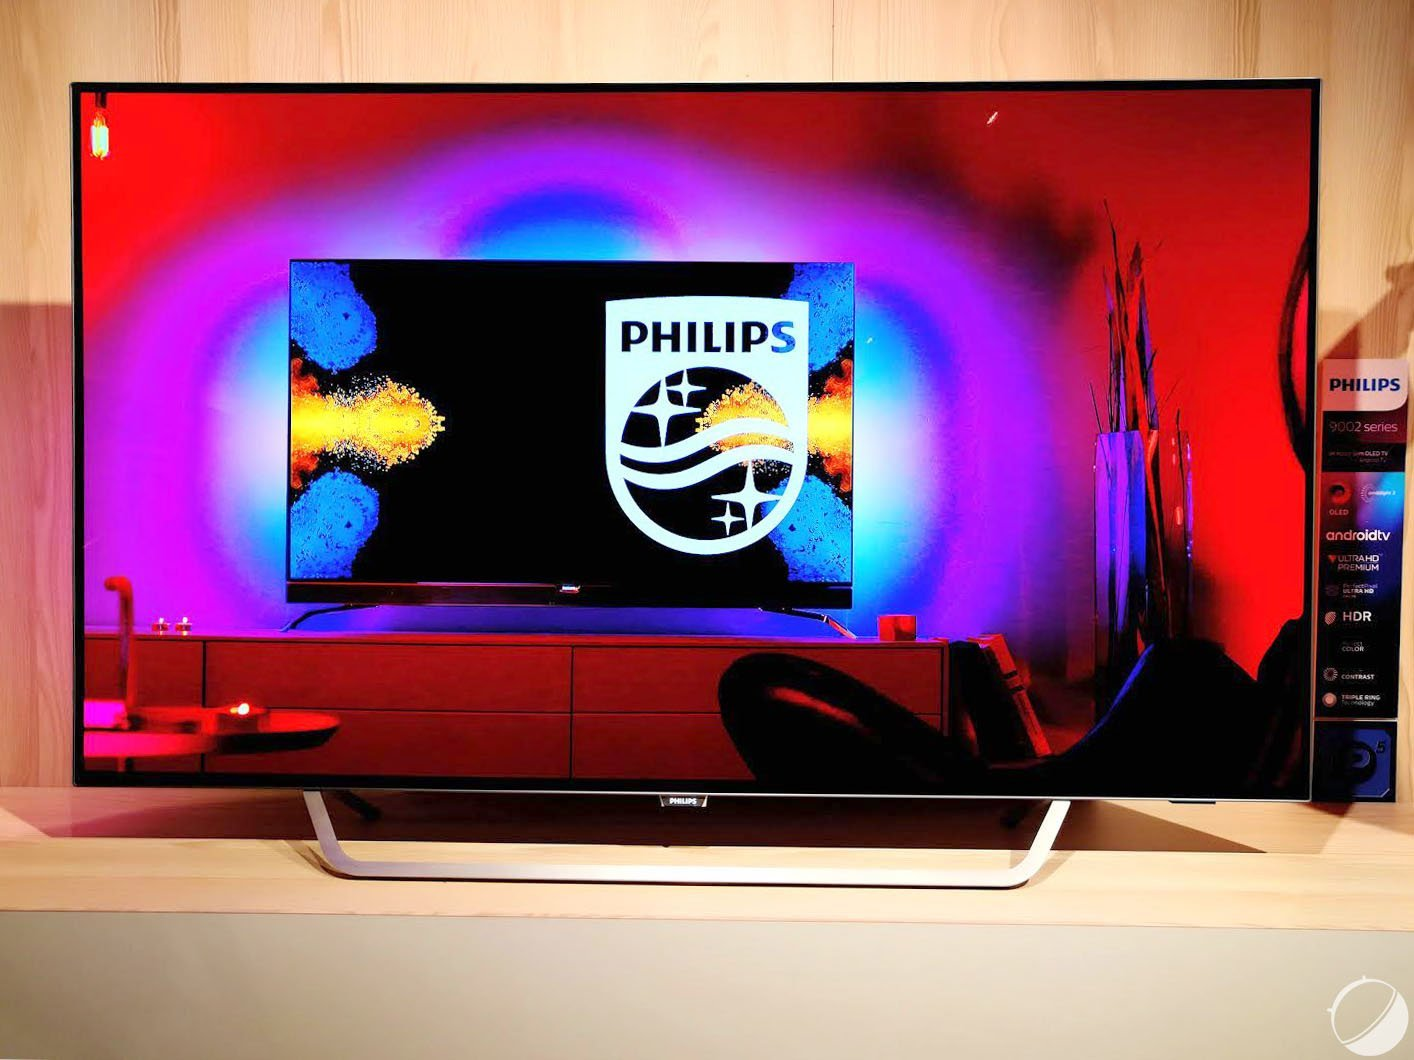 Philips 55POS9002 : TP Vision renouvelle son OLED sous Android TV